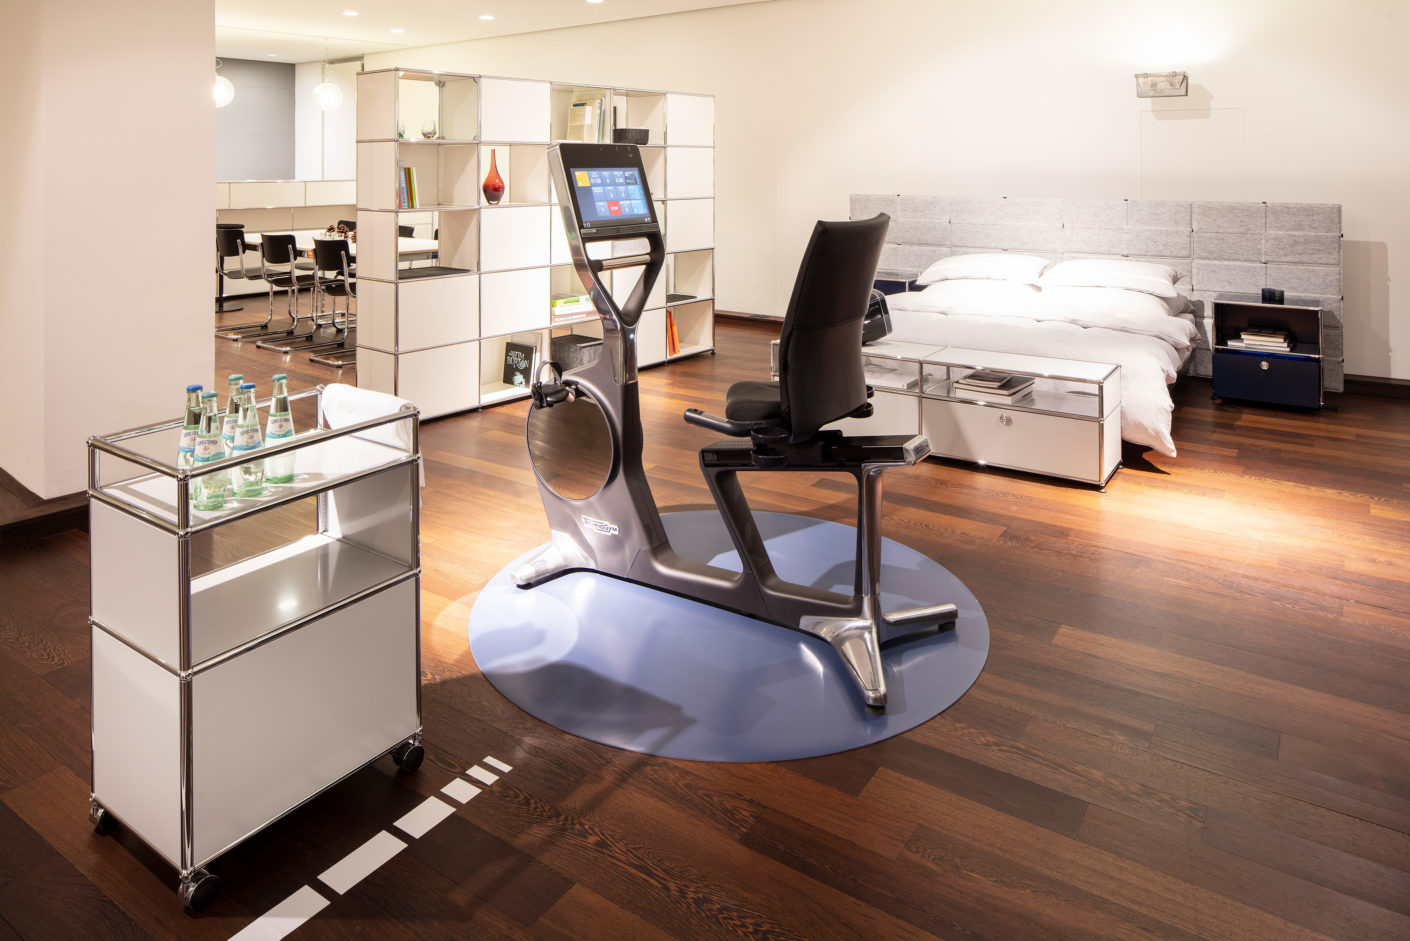 The fitness equipment from Technogym in the USM Showroom Hamburg.